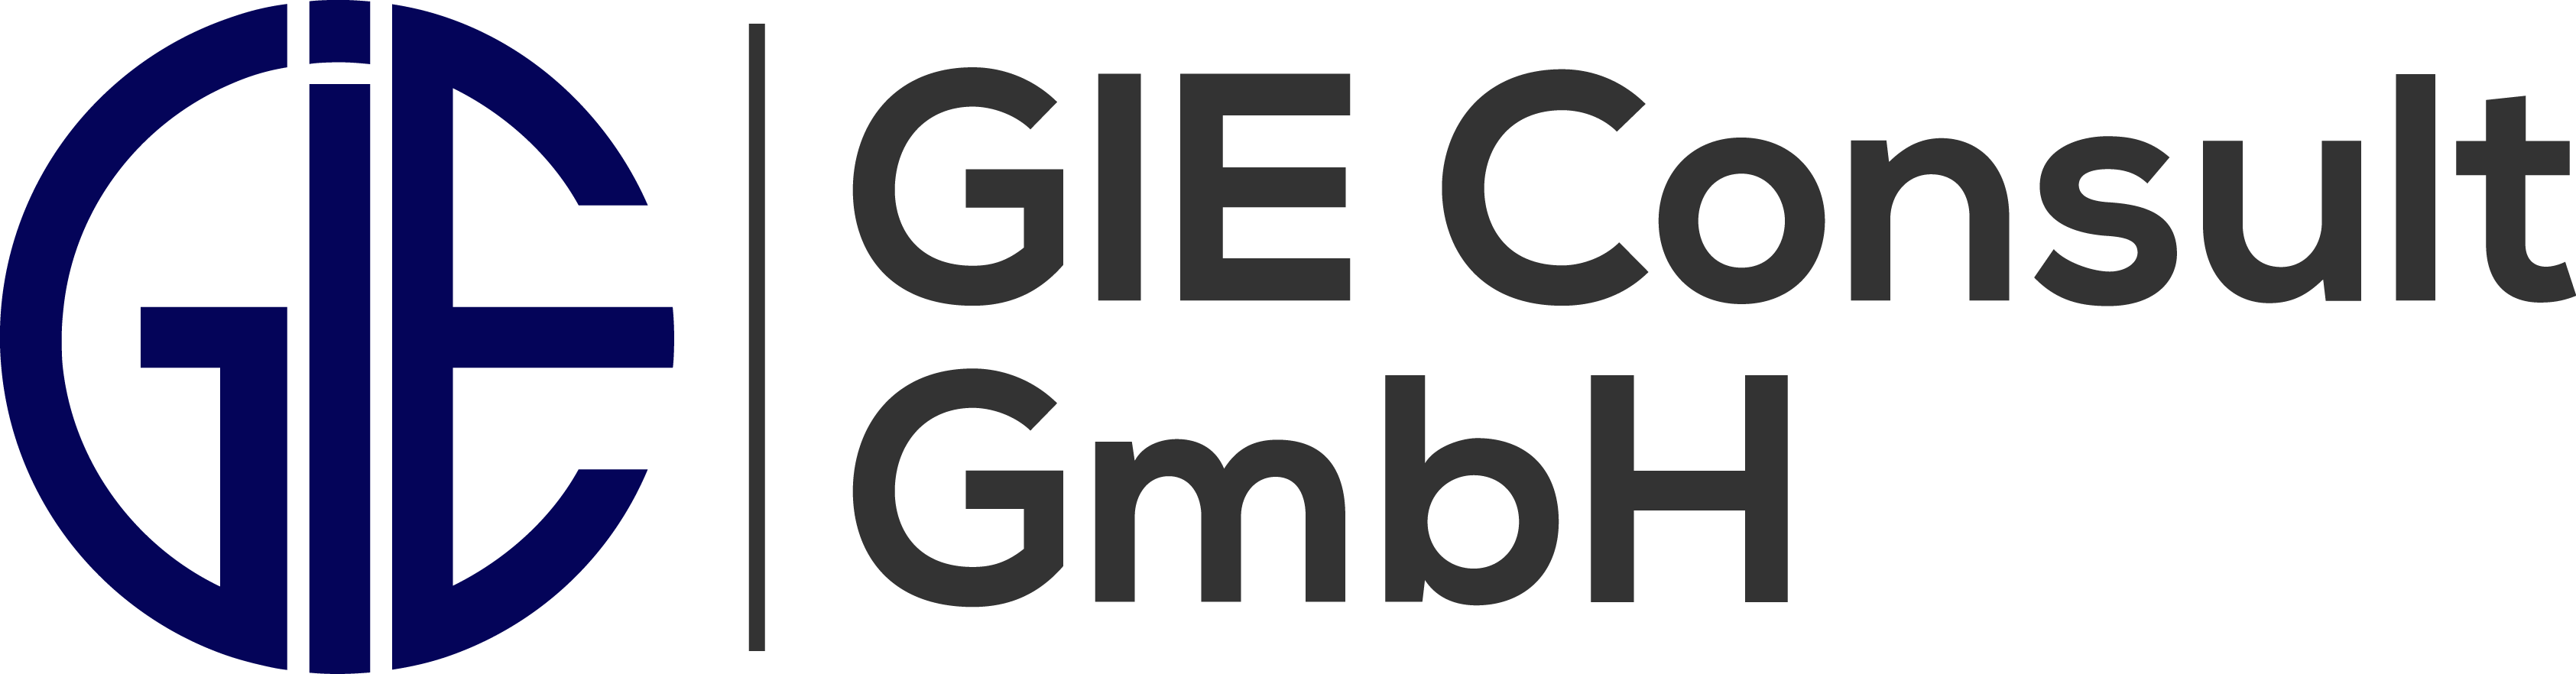 GIE Consult GmbH